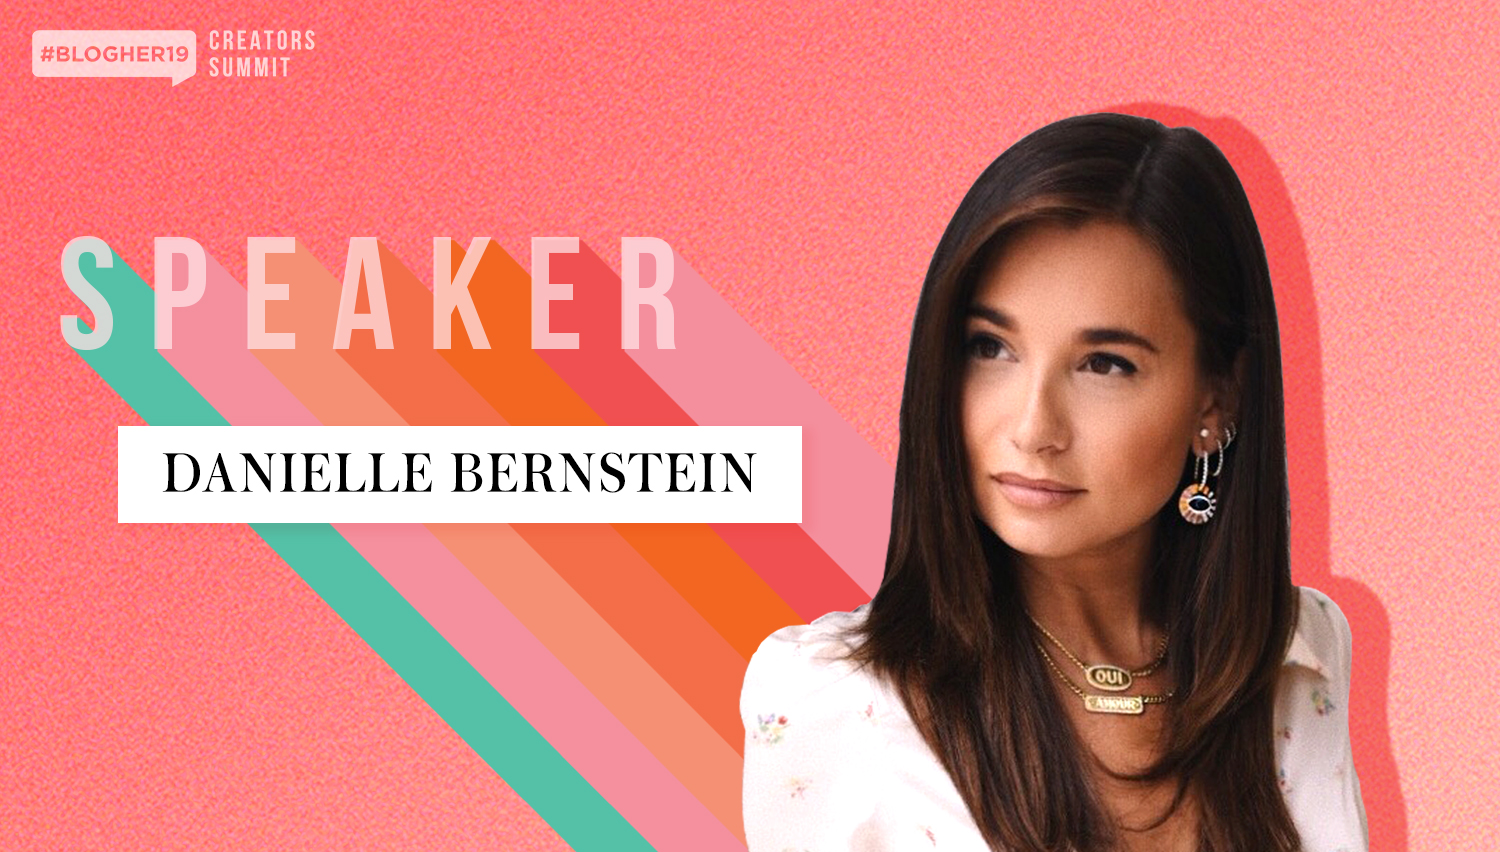 Danielle joins #BlogHer19 Creators Summit on September 19th for a fireside chat on all things business. - Danielle Bernstein reveals her secrets to obtaining and maintaining multiple revenue streams, making smart investments for your brand, and building a loyal fanbase that drives dollars.